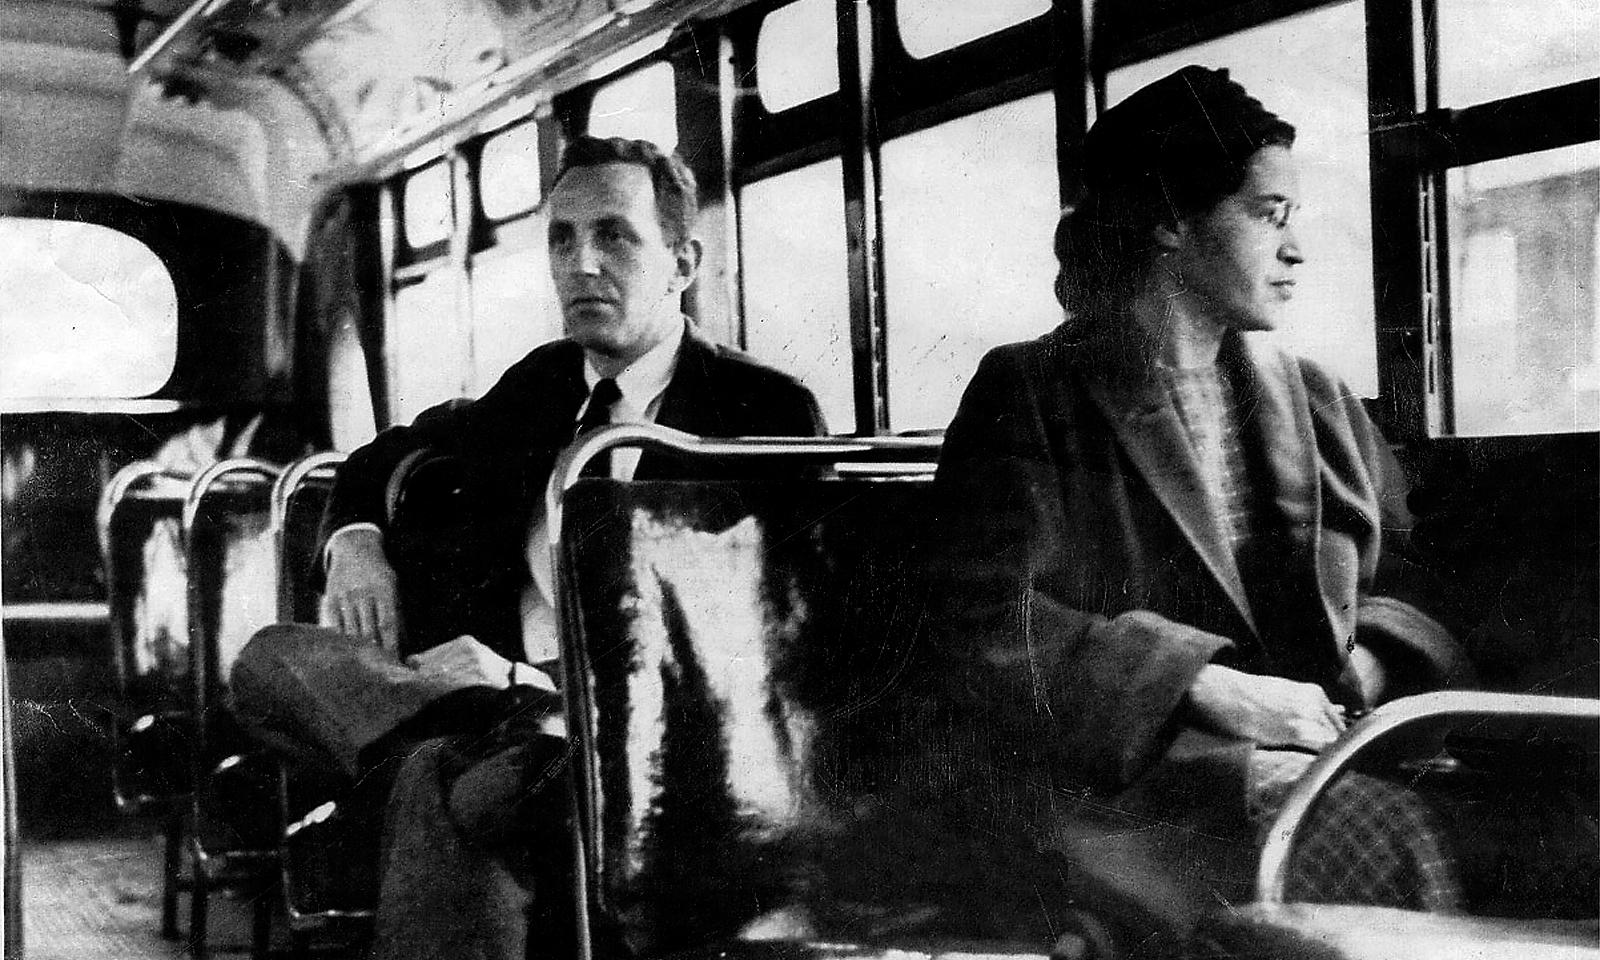 Rosa Parks exhibition presents civil rights hero in her own words